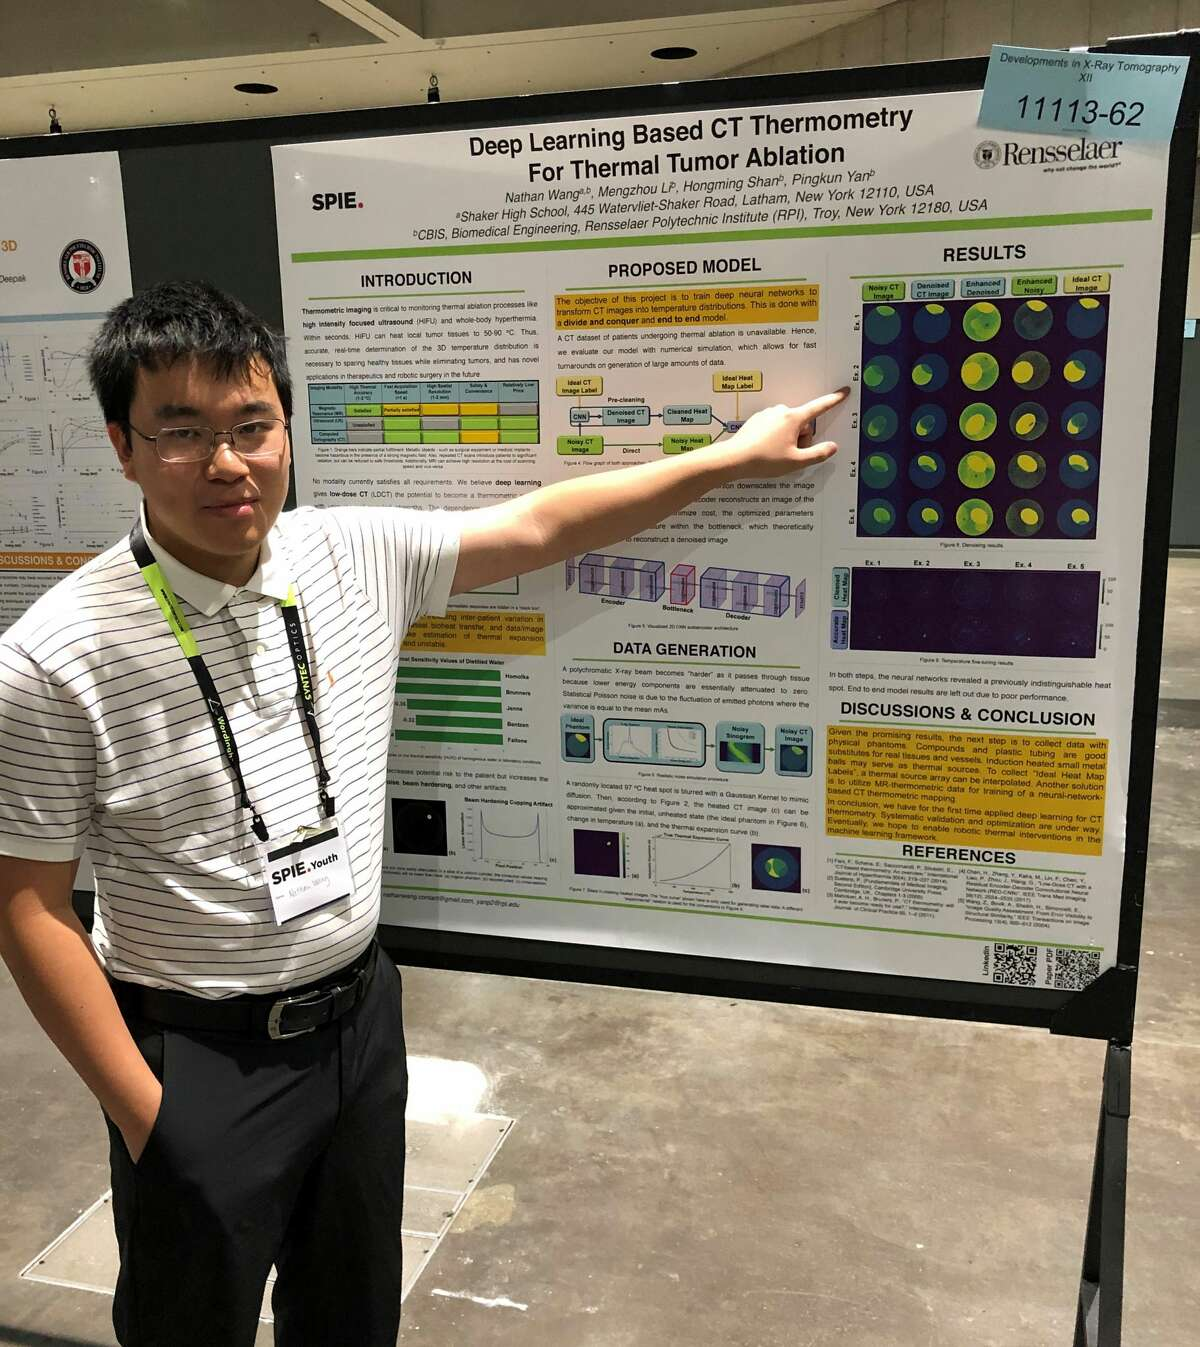 As a Shaker High School student, Nathan Wang of Latham, N.Y. was a contestant at the SPIE convention and is pictured here at the convention in San Diego in August 2019. Wang proposed legislation on artificial intelligence education which Congress included in the Fiscal Year 2021 National Defense Authorization Act.